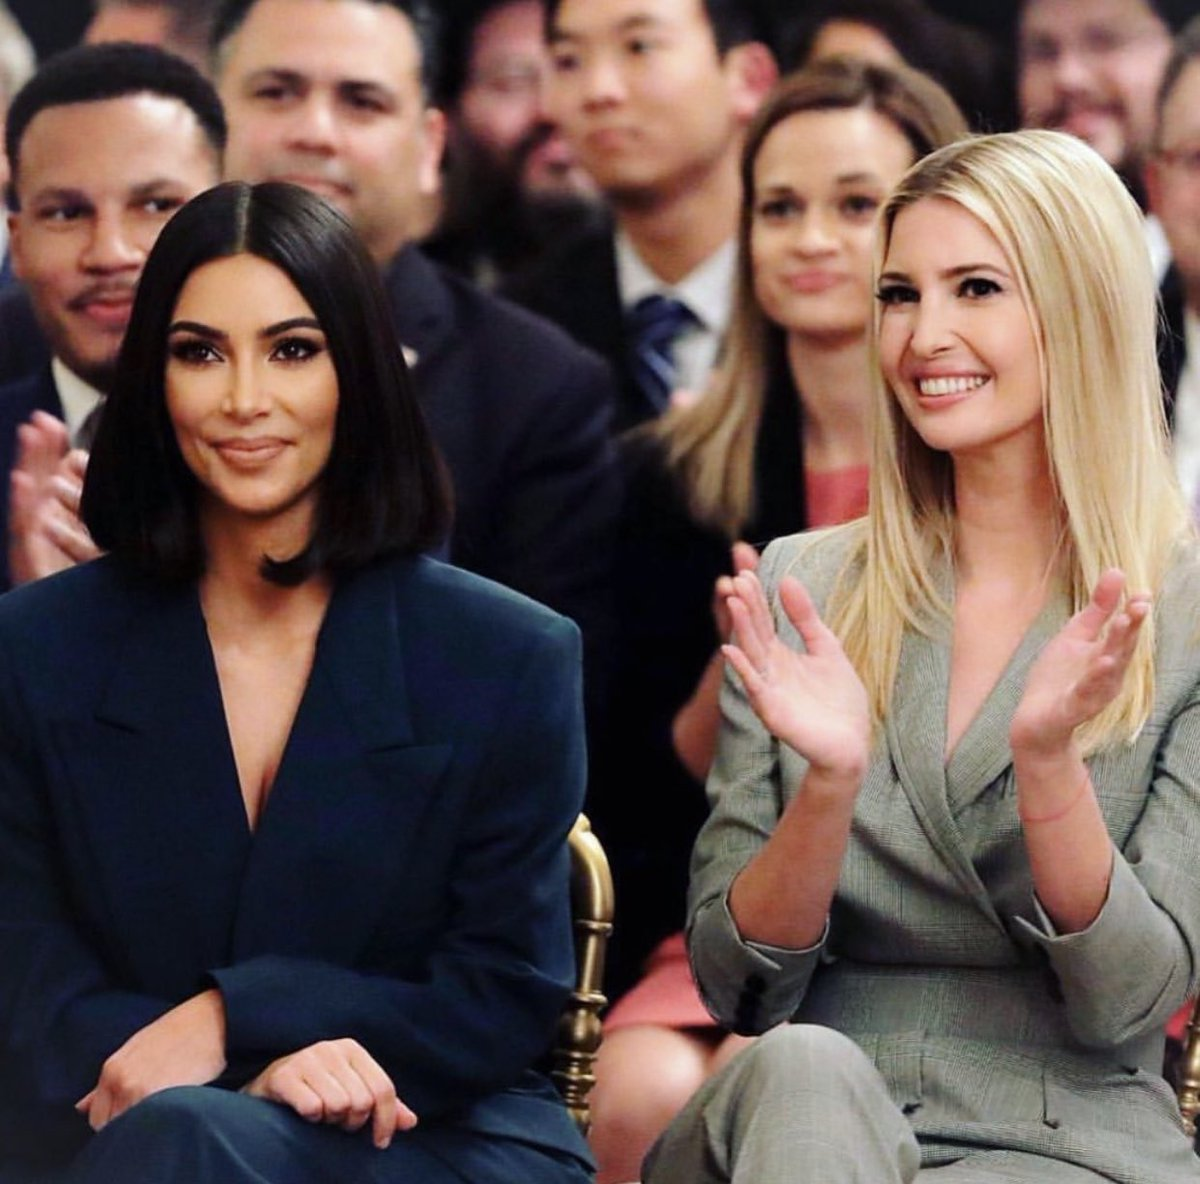 Thank you @KimKardashian for your passionate advocacy of CJR and Second Chance hiring!